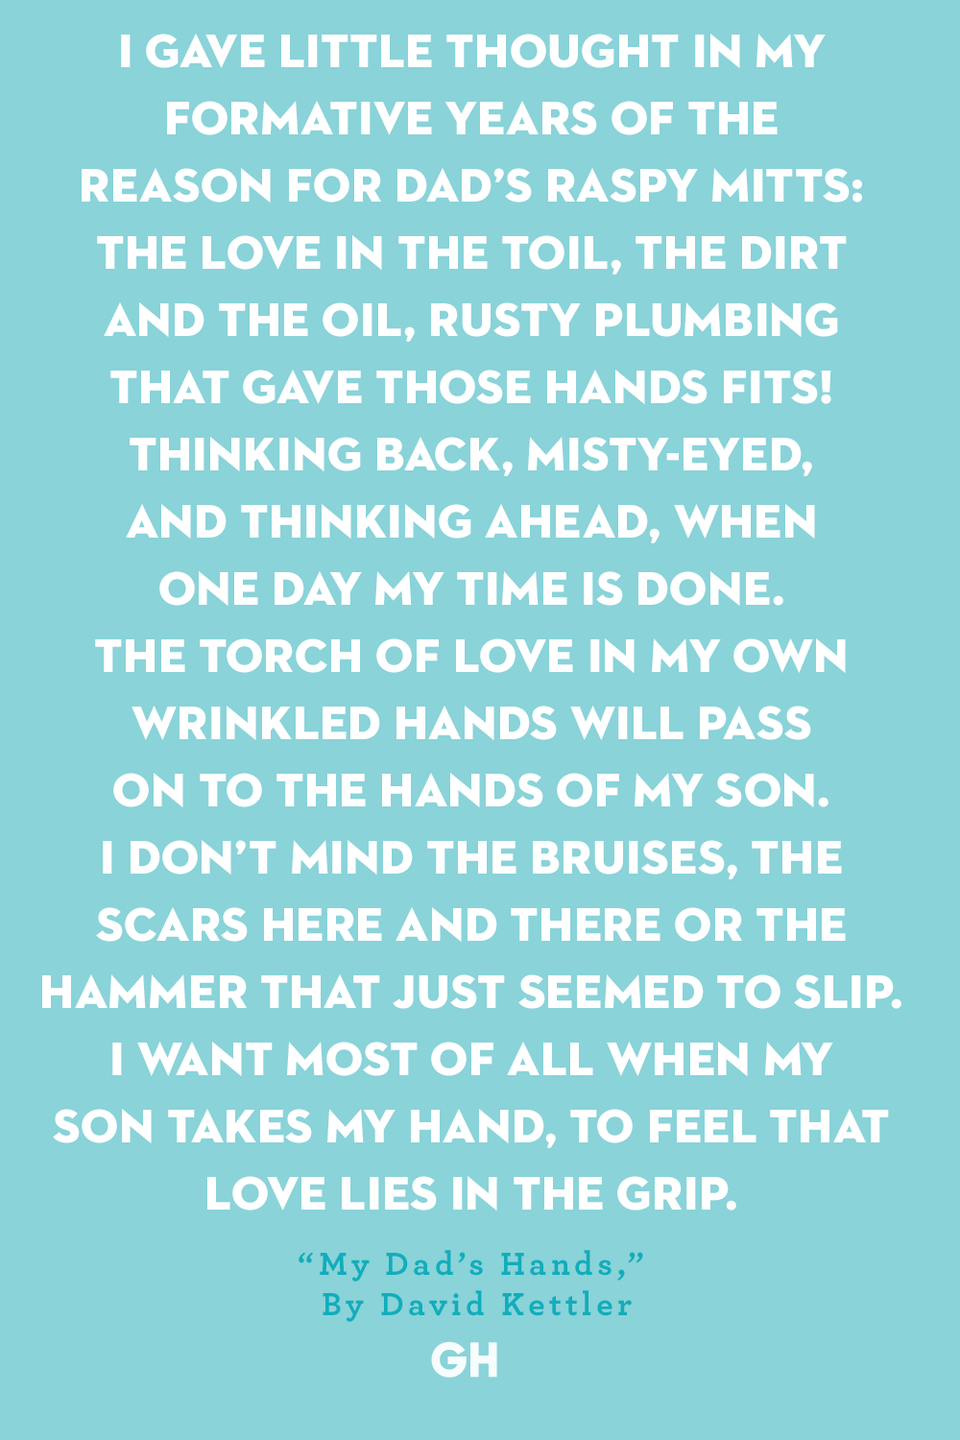 <p>I gave little thought in my formative years of the reason for Dad's raspy mitts: </p><p>The love in the toil, the dirt and the oil, rusty plumbing that gave those hands fits! </p><p>Thinking back, misty-eyed, and thinking ahead, when one day my time is done. </p><p>The torch of love in my own wrinkled hands will pass on to the hands of my son. </p><p>I don't mind the bruises, the scars here and there or the hammer that just seemed to slip. </p><p>I want most of all when my son takes my hand, to feel that love lies in the grip.</p>